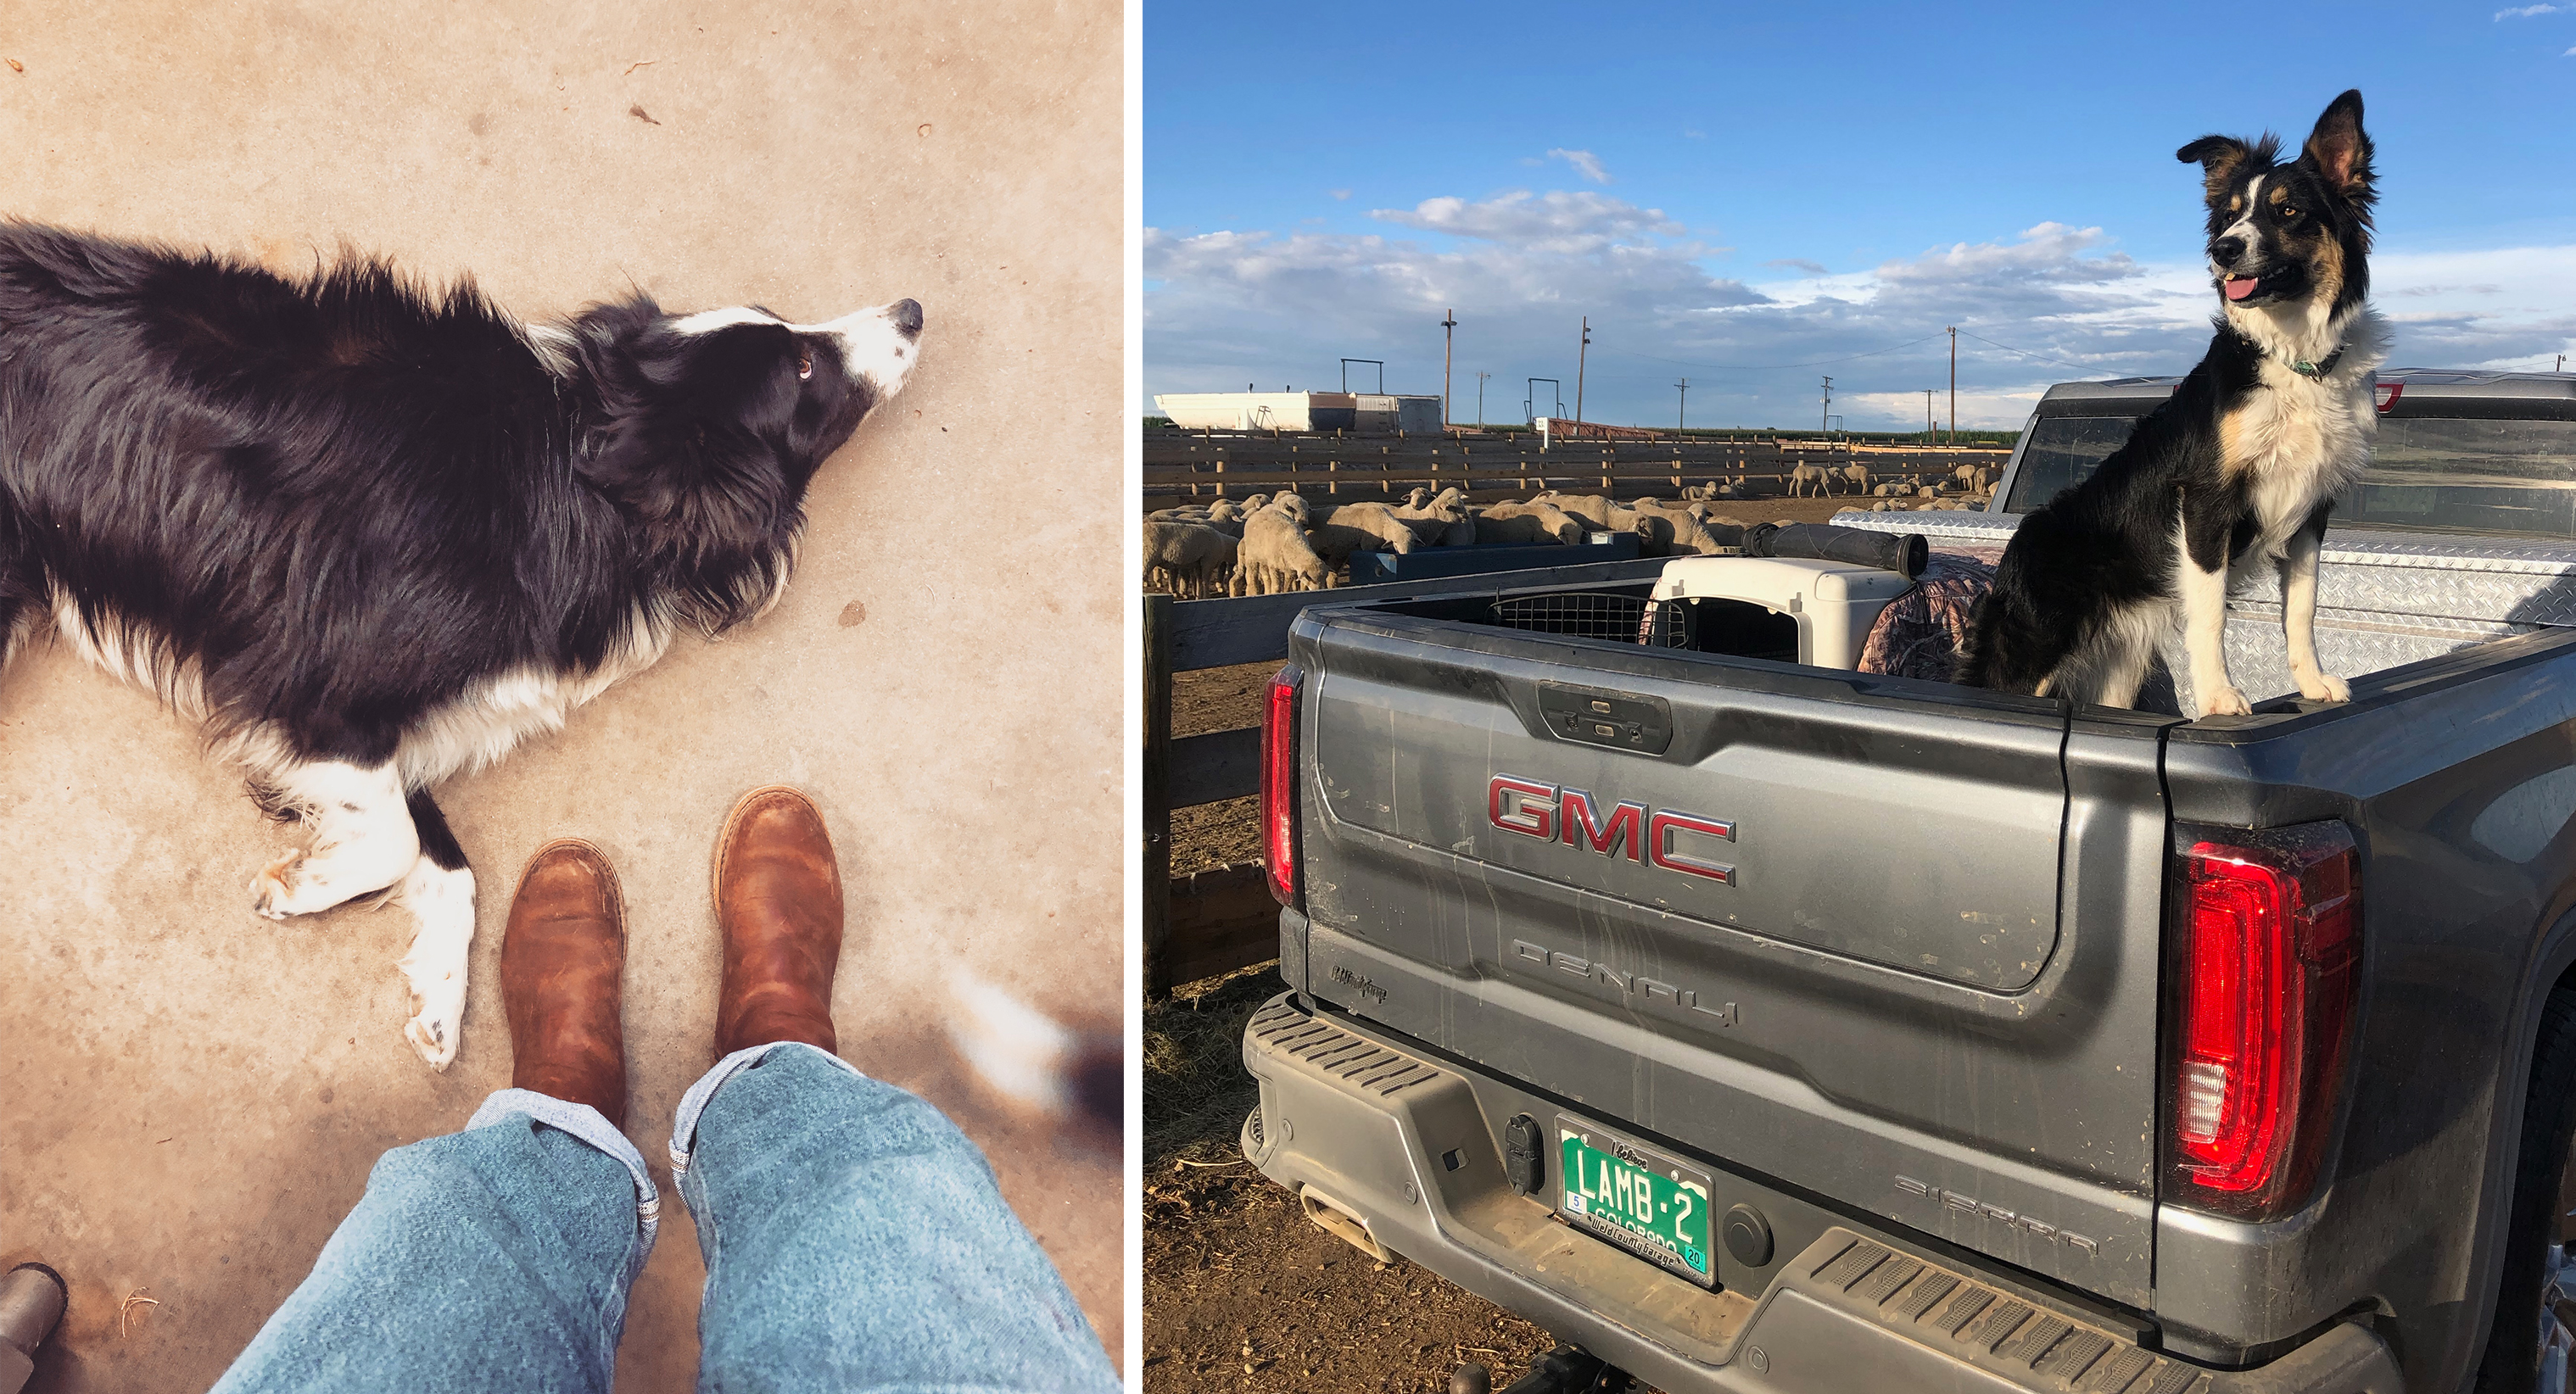 Millie, the sheepdog laying on the ground, and in the back of a pickup truck